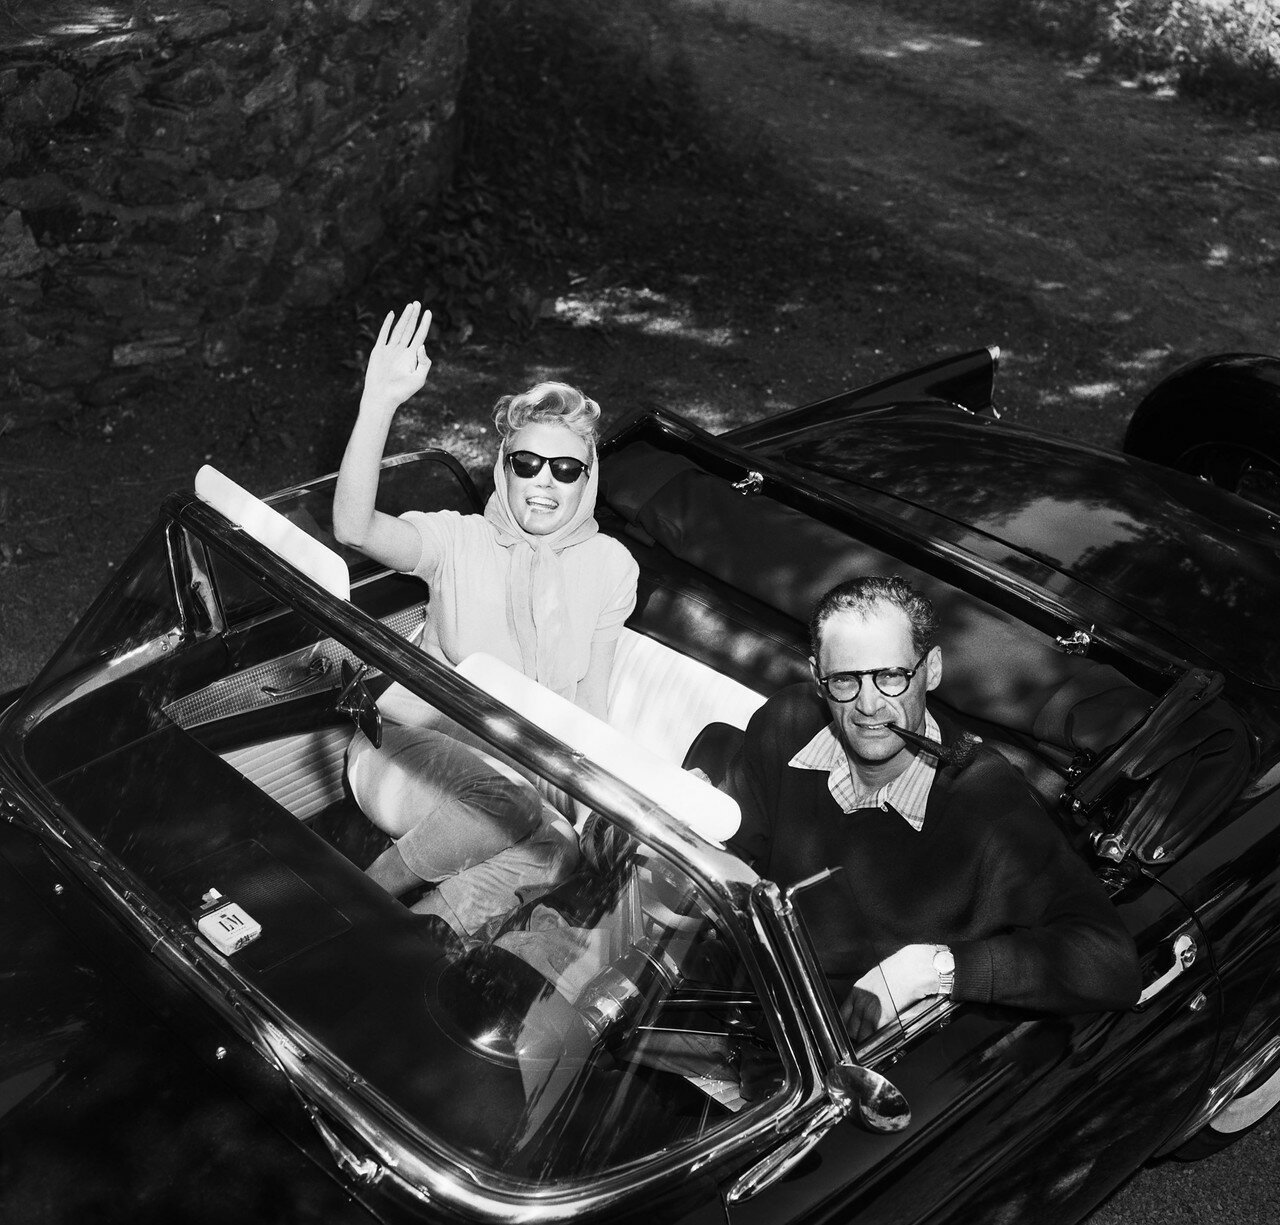 Monroe and Miller in Their Car